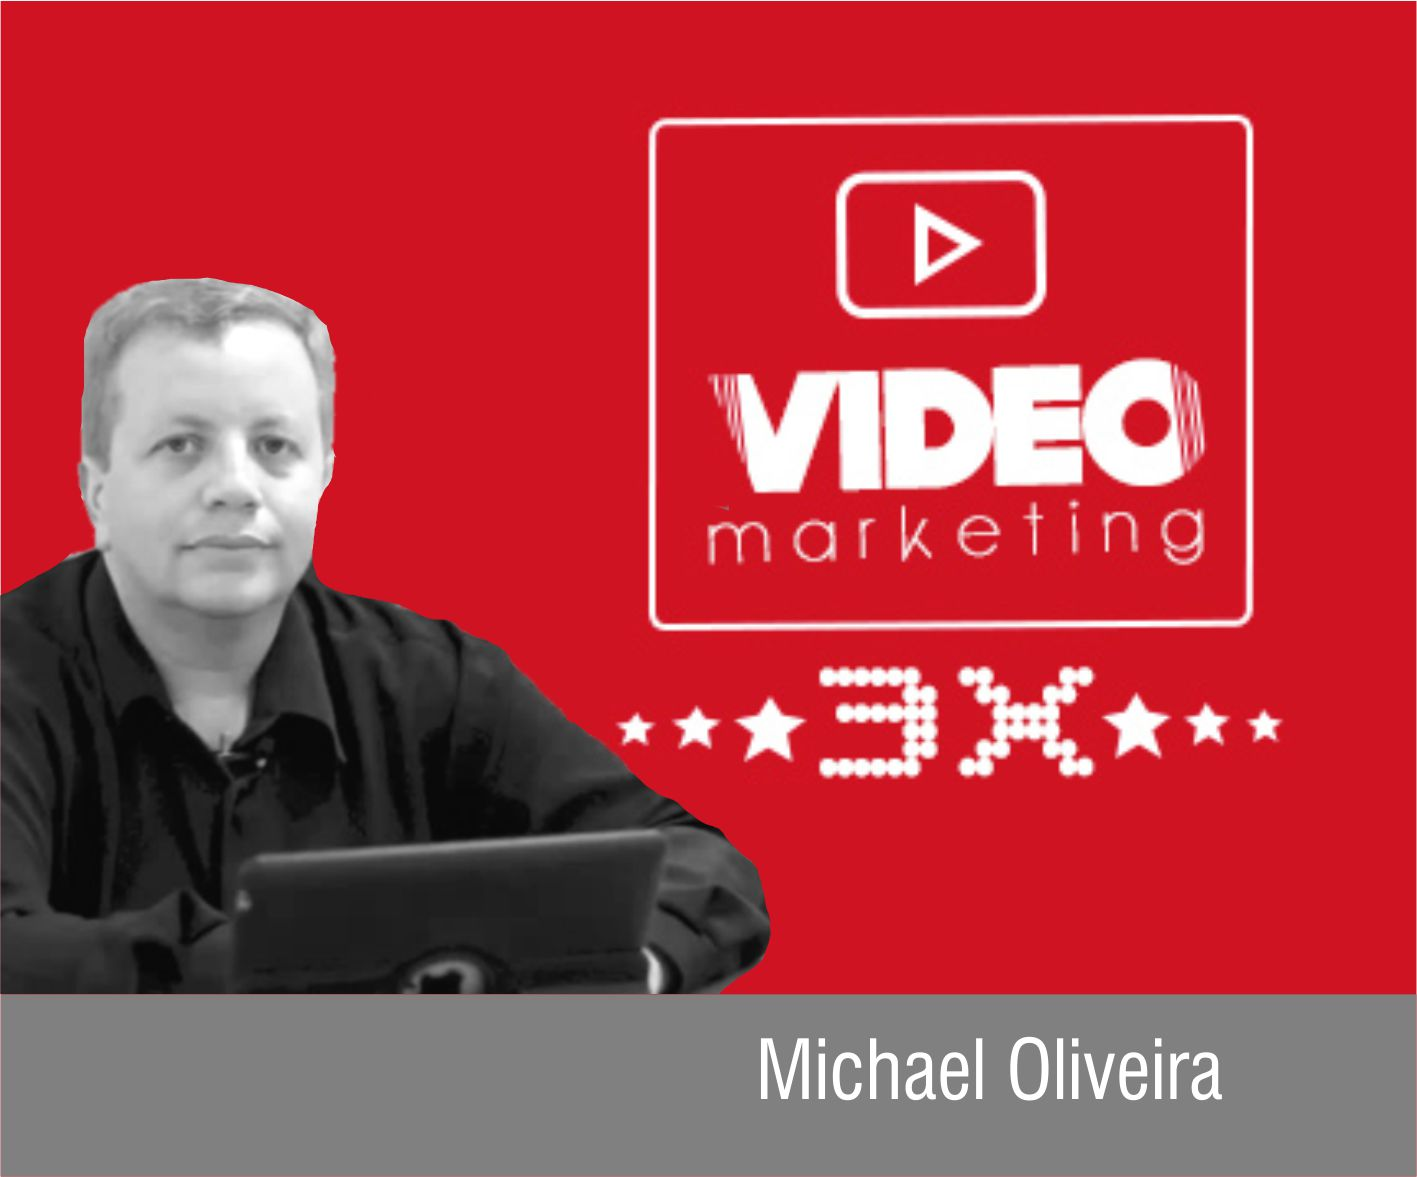 VÍDEO MARKETING 3X